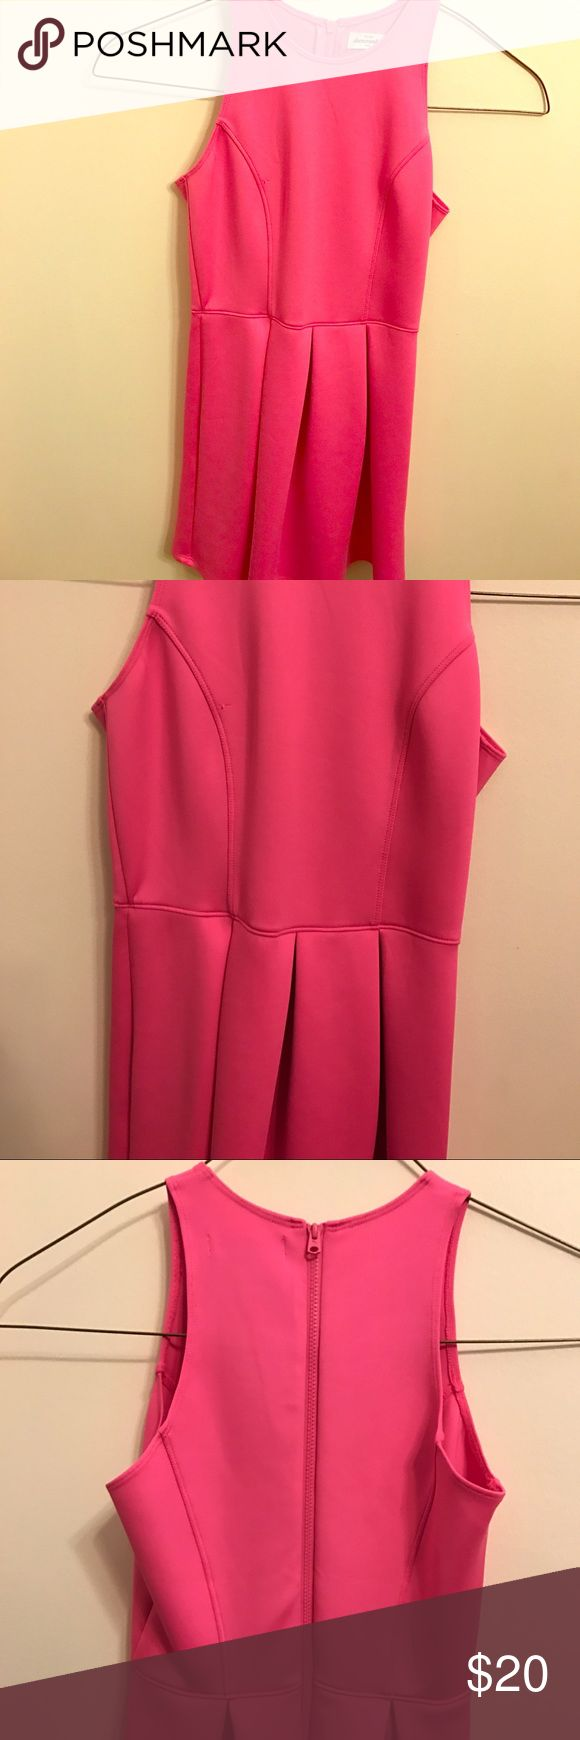 Abercrombie dress Worn once, flattering material on kids!! Awesome fit, plain but adorable! abercrombie kids Dresses Formal